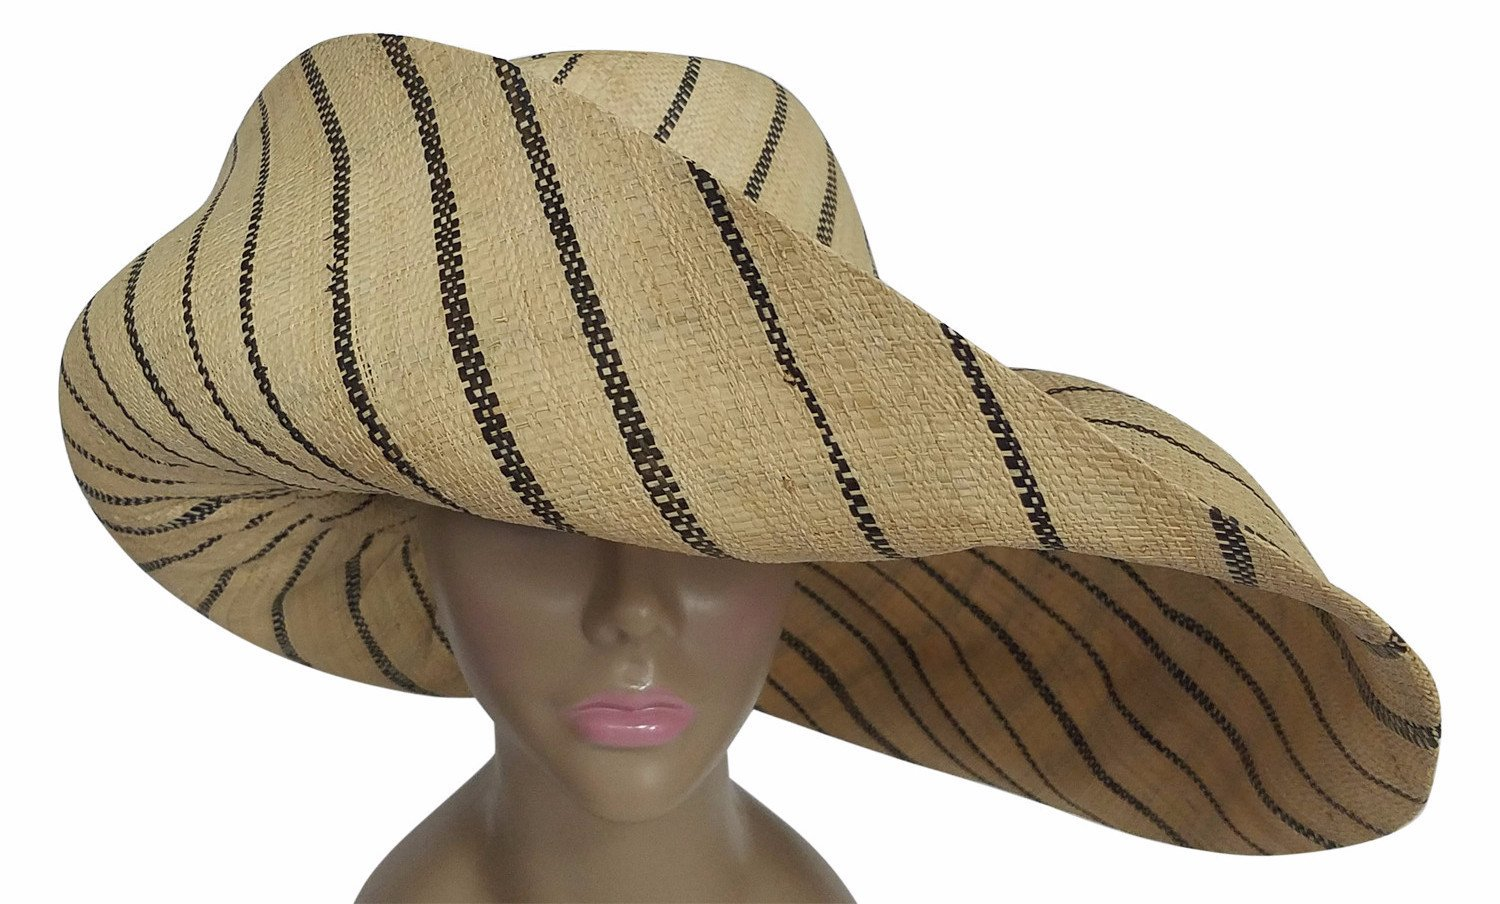 Dubaku: Authentic African Hand Made Black and Natural Madagascar Big Brim Raffia Sun Hat